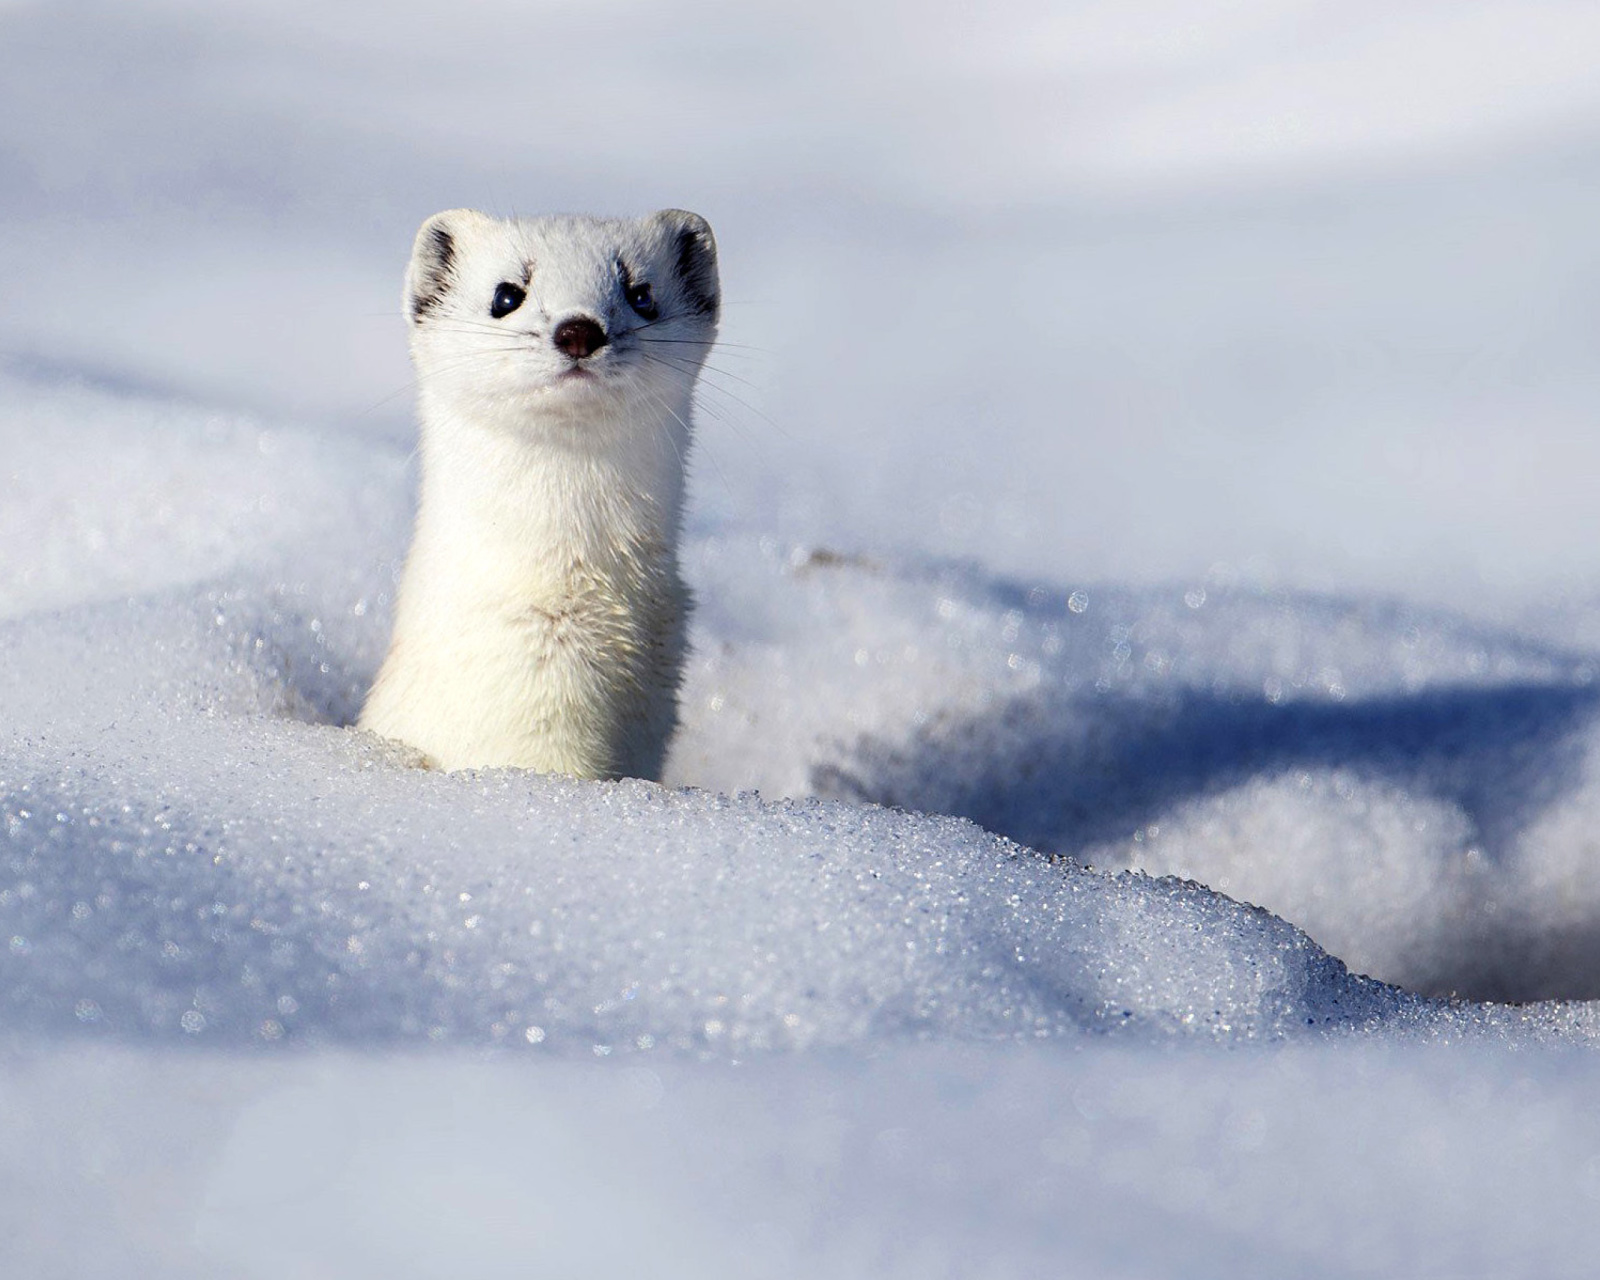 Stoat screenshot #1 1600x1280